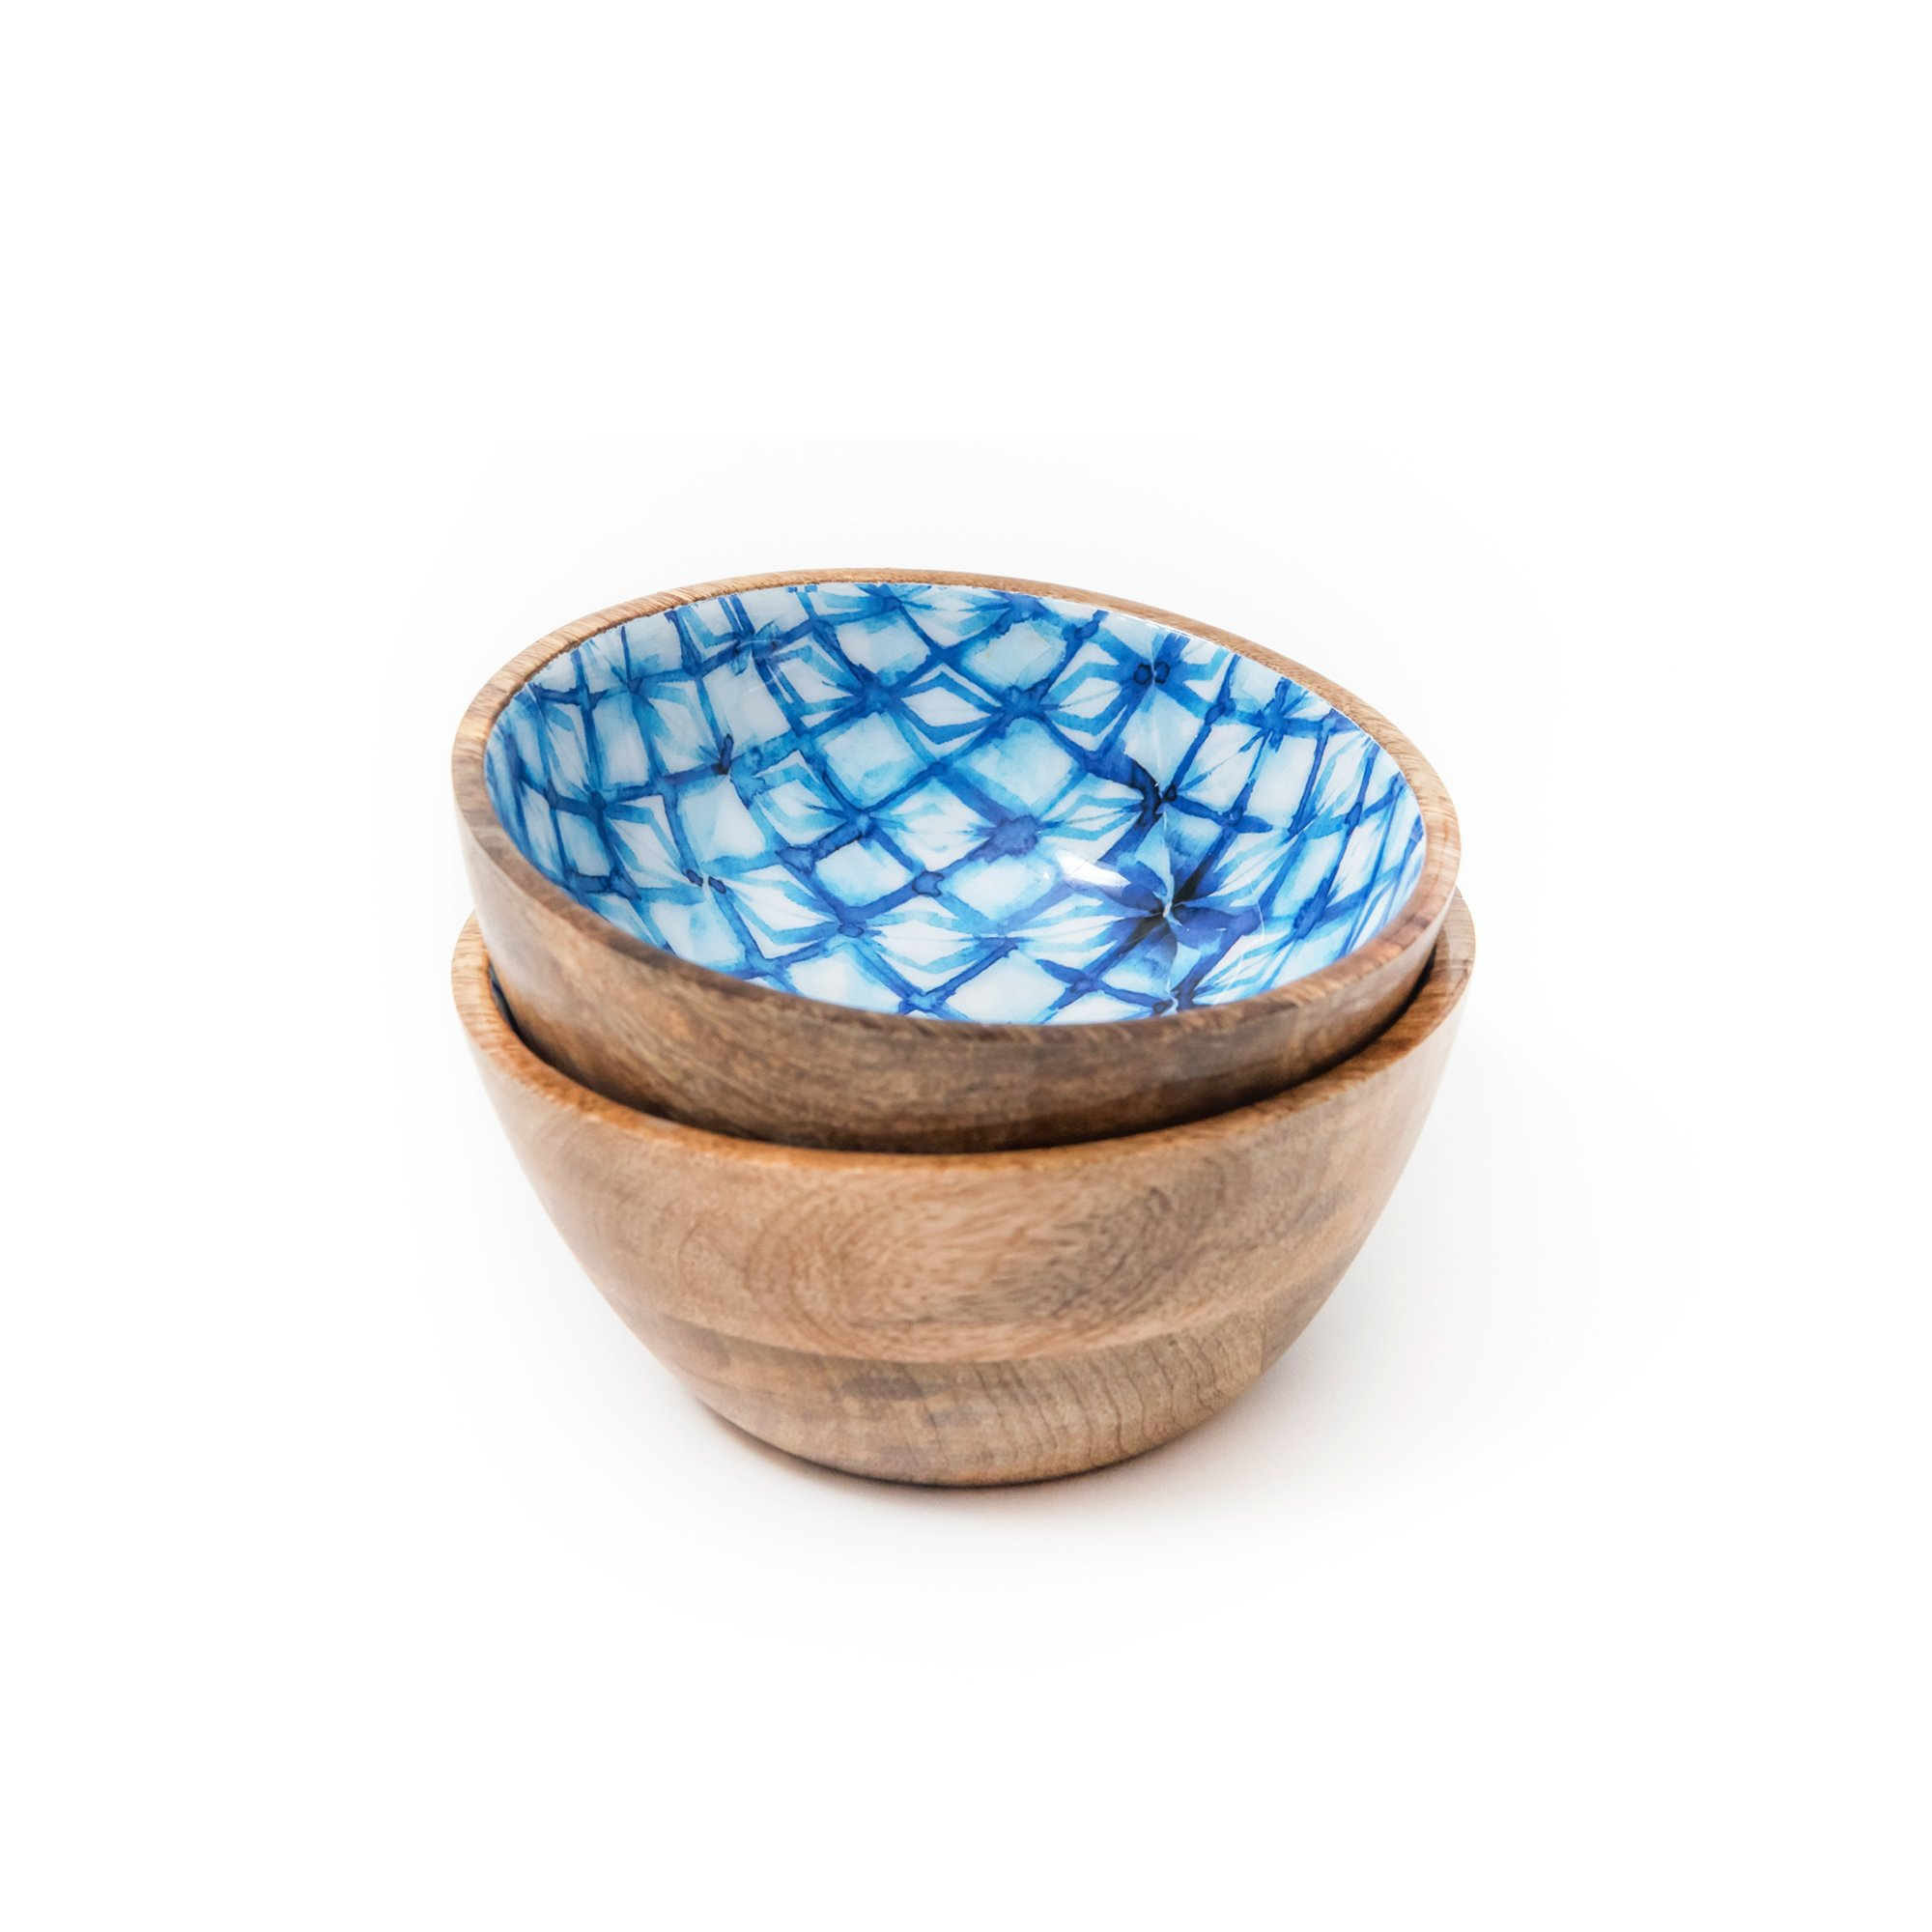 Wooden Salad Bowls Set of 2, Colorful Decorative Serving Mango Wood Bowl Set for Food, Fruits, Cereals, Desserts - 20 Ounces, 6 Inch Diameter x 3 Inch Height, Indigo Blue Shibori